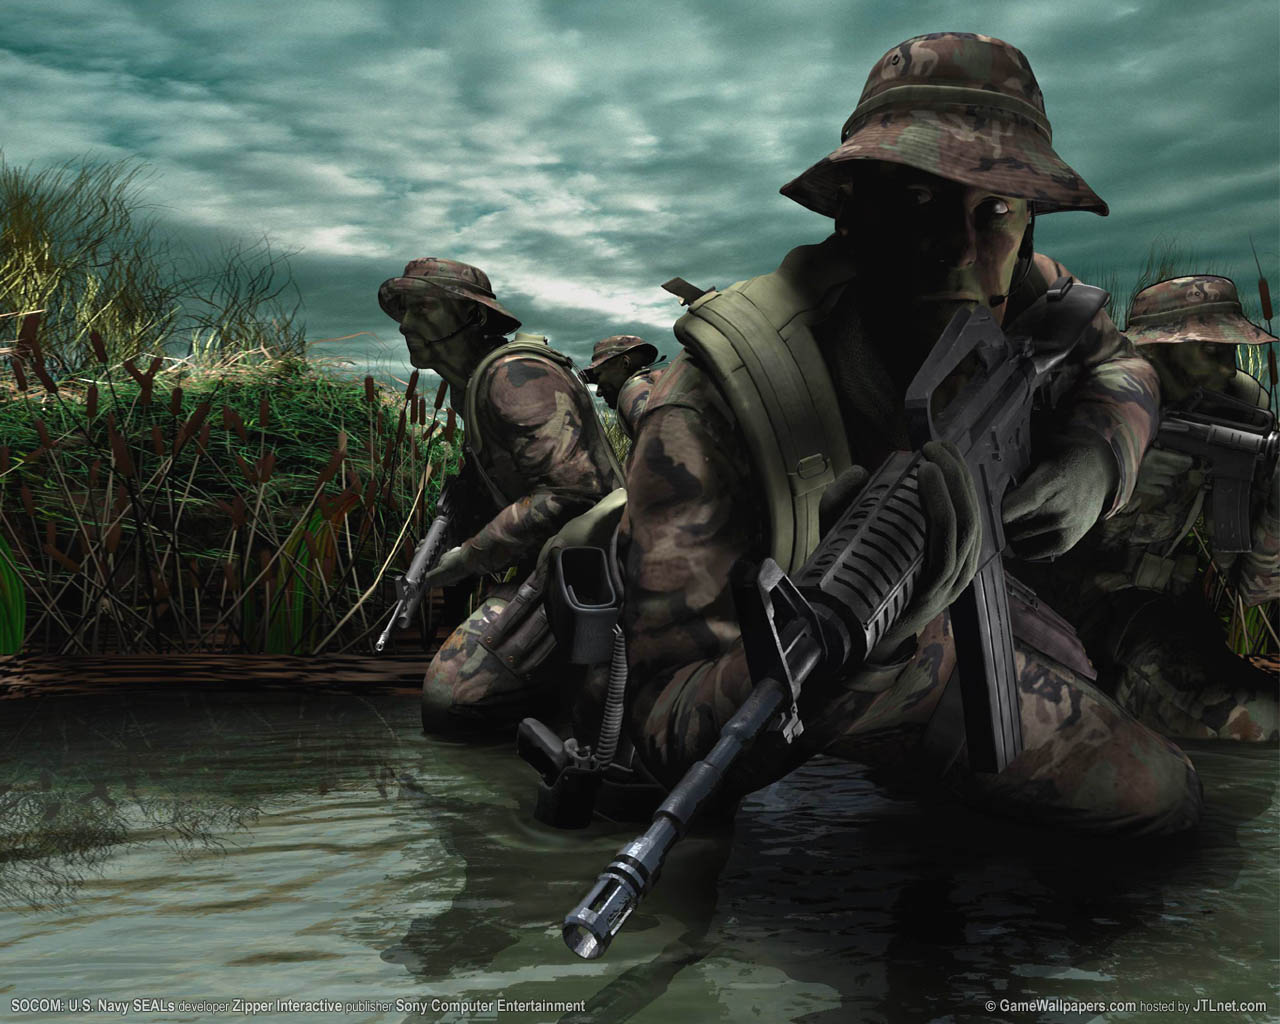 Us Army Rangers Wallpapers 8091 Hd Wallpapers in War n Army   Imagesci 1280x1024